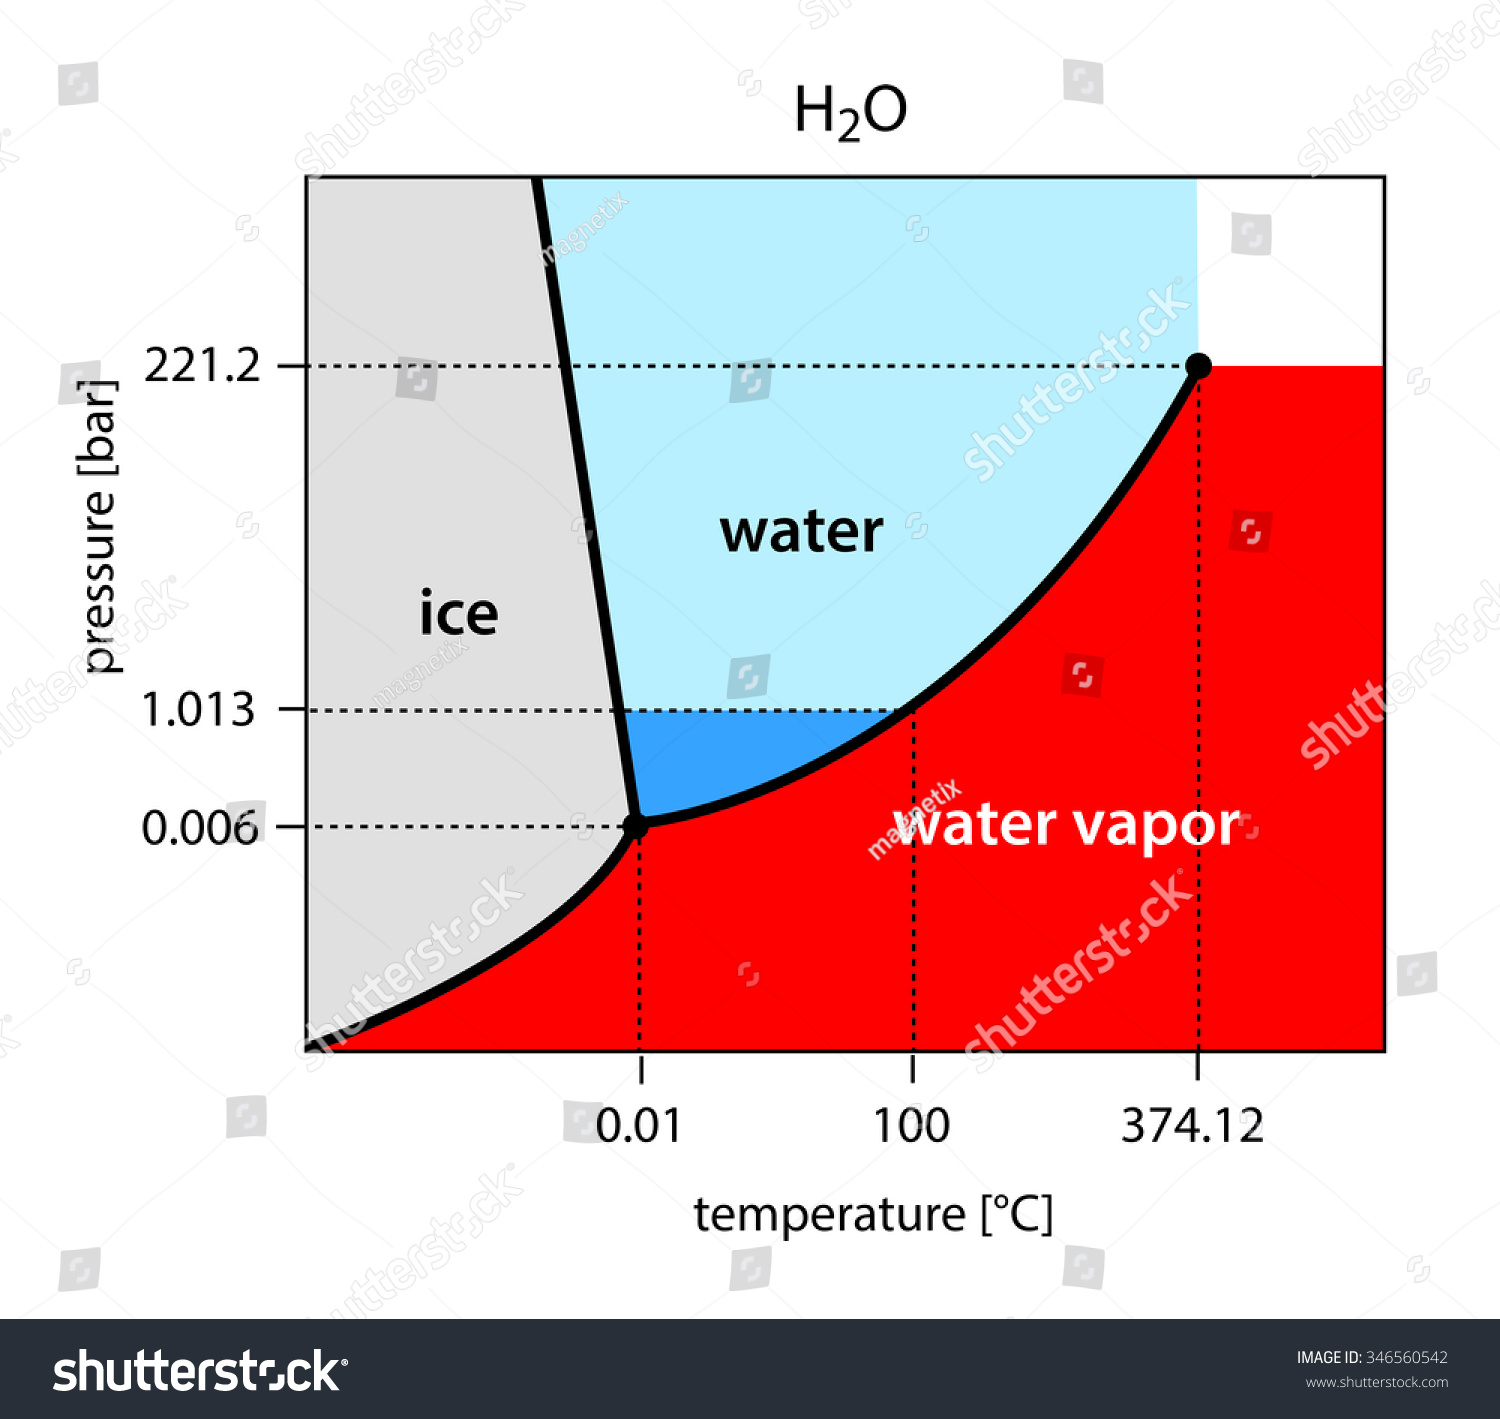 Binary Phase Diagram Water H 2 O Stock Illustration 346560542 Image Moonphasesdiagramjpg For Term Side Of Card H2o